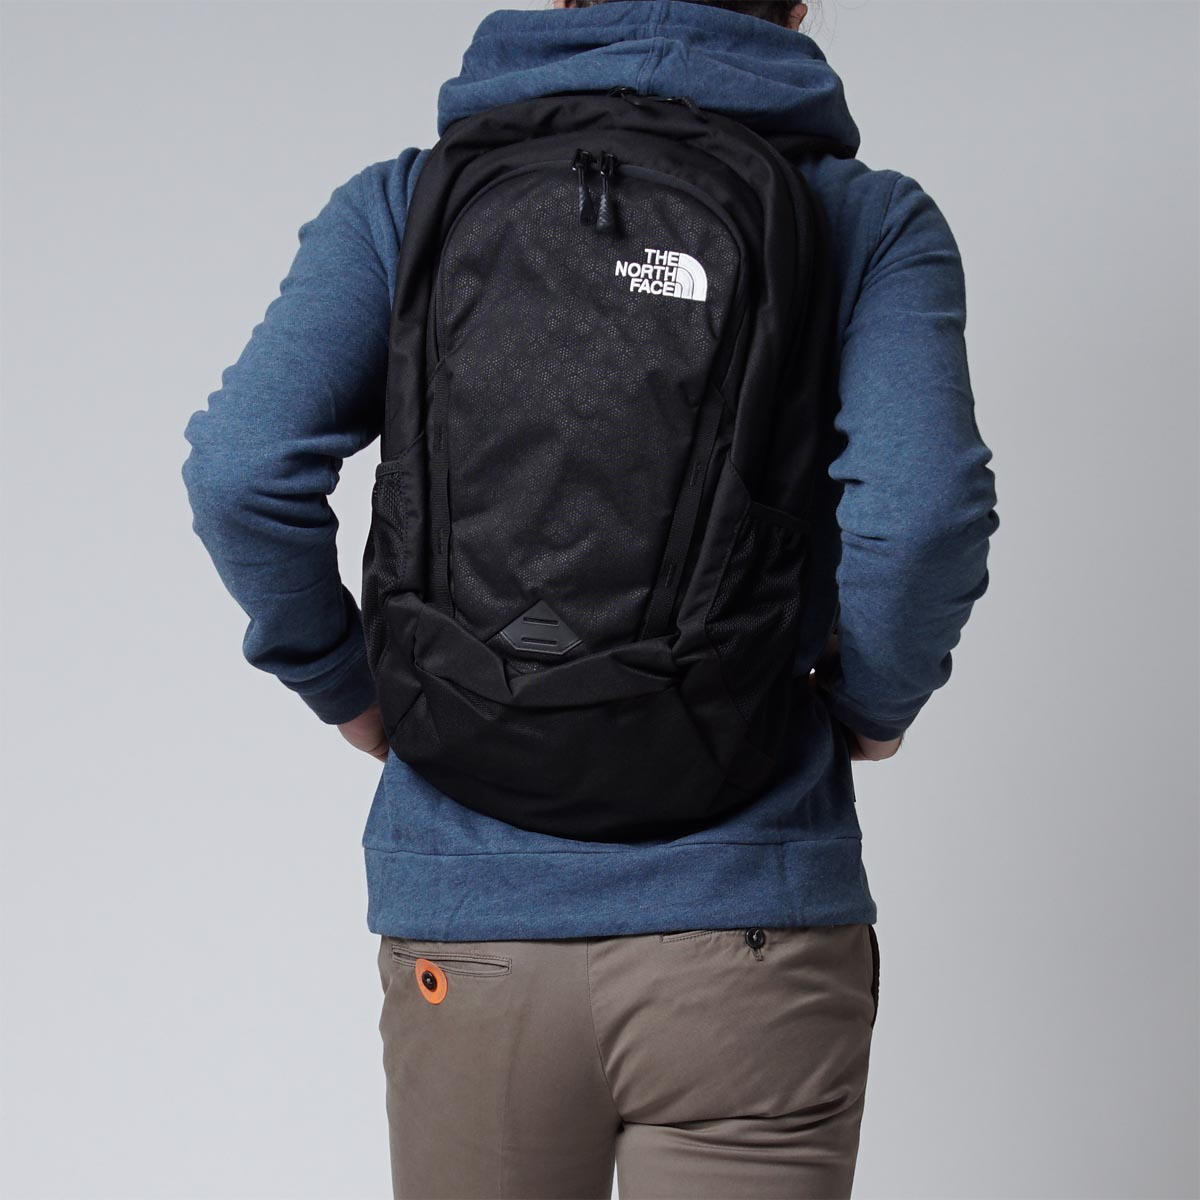 5e84b31040 Best North Face Backpacks Reviewed in 2019